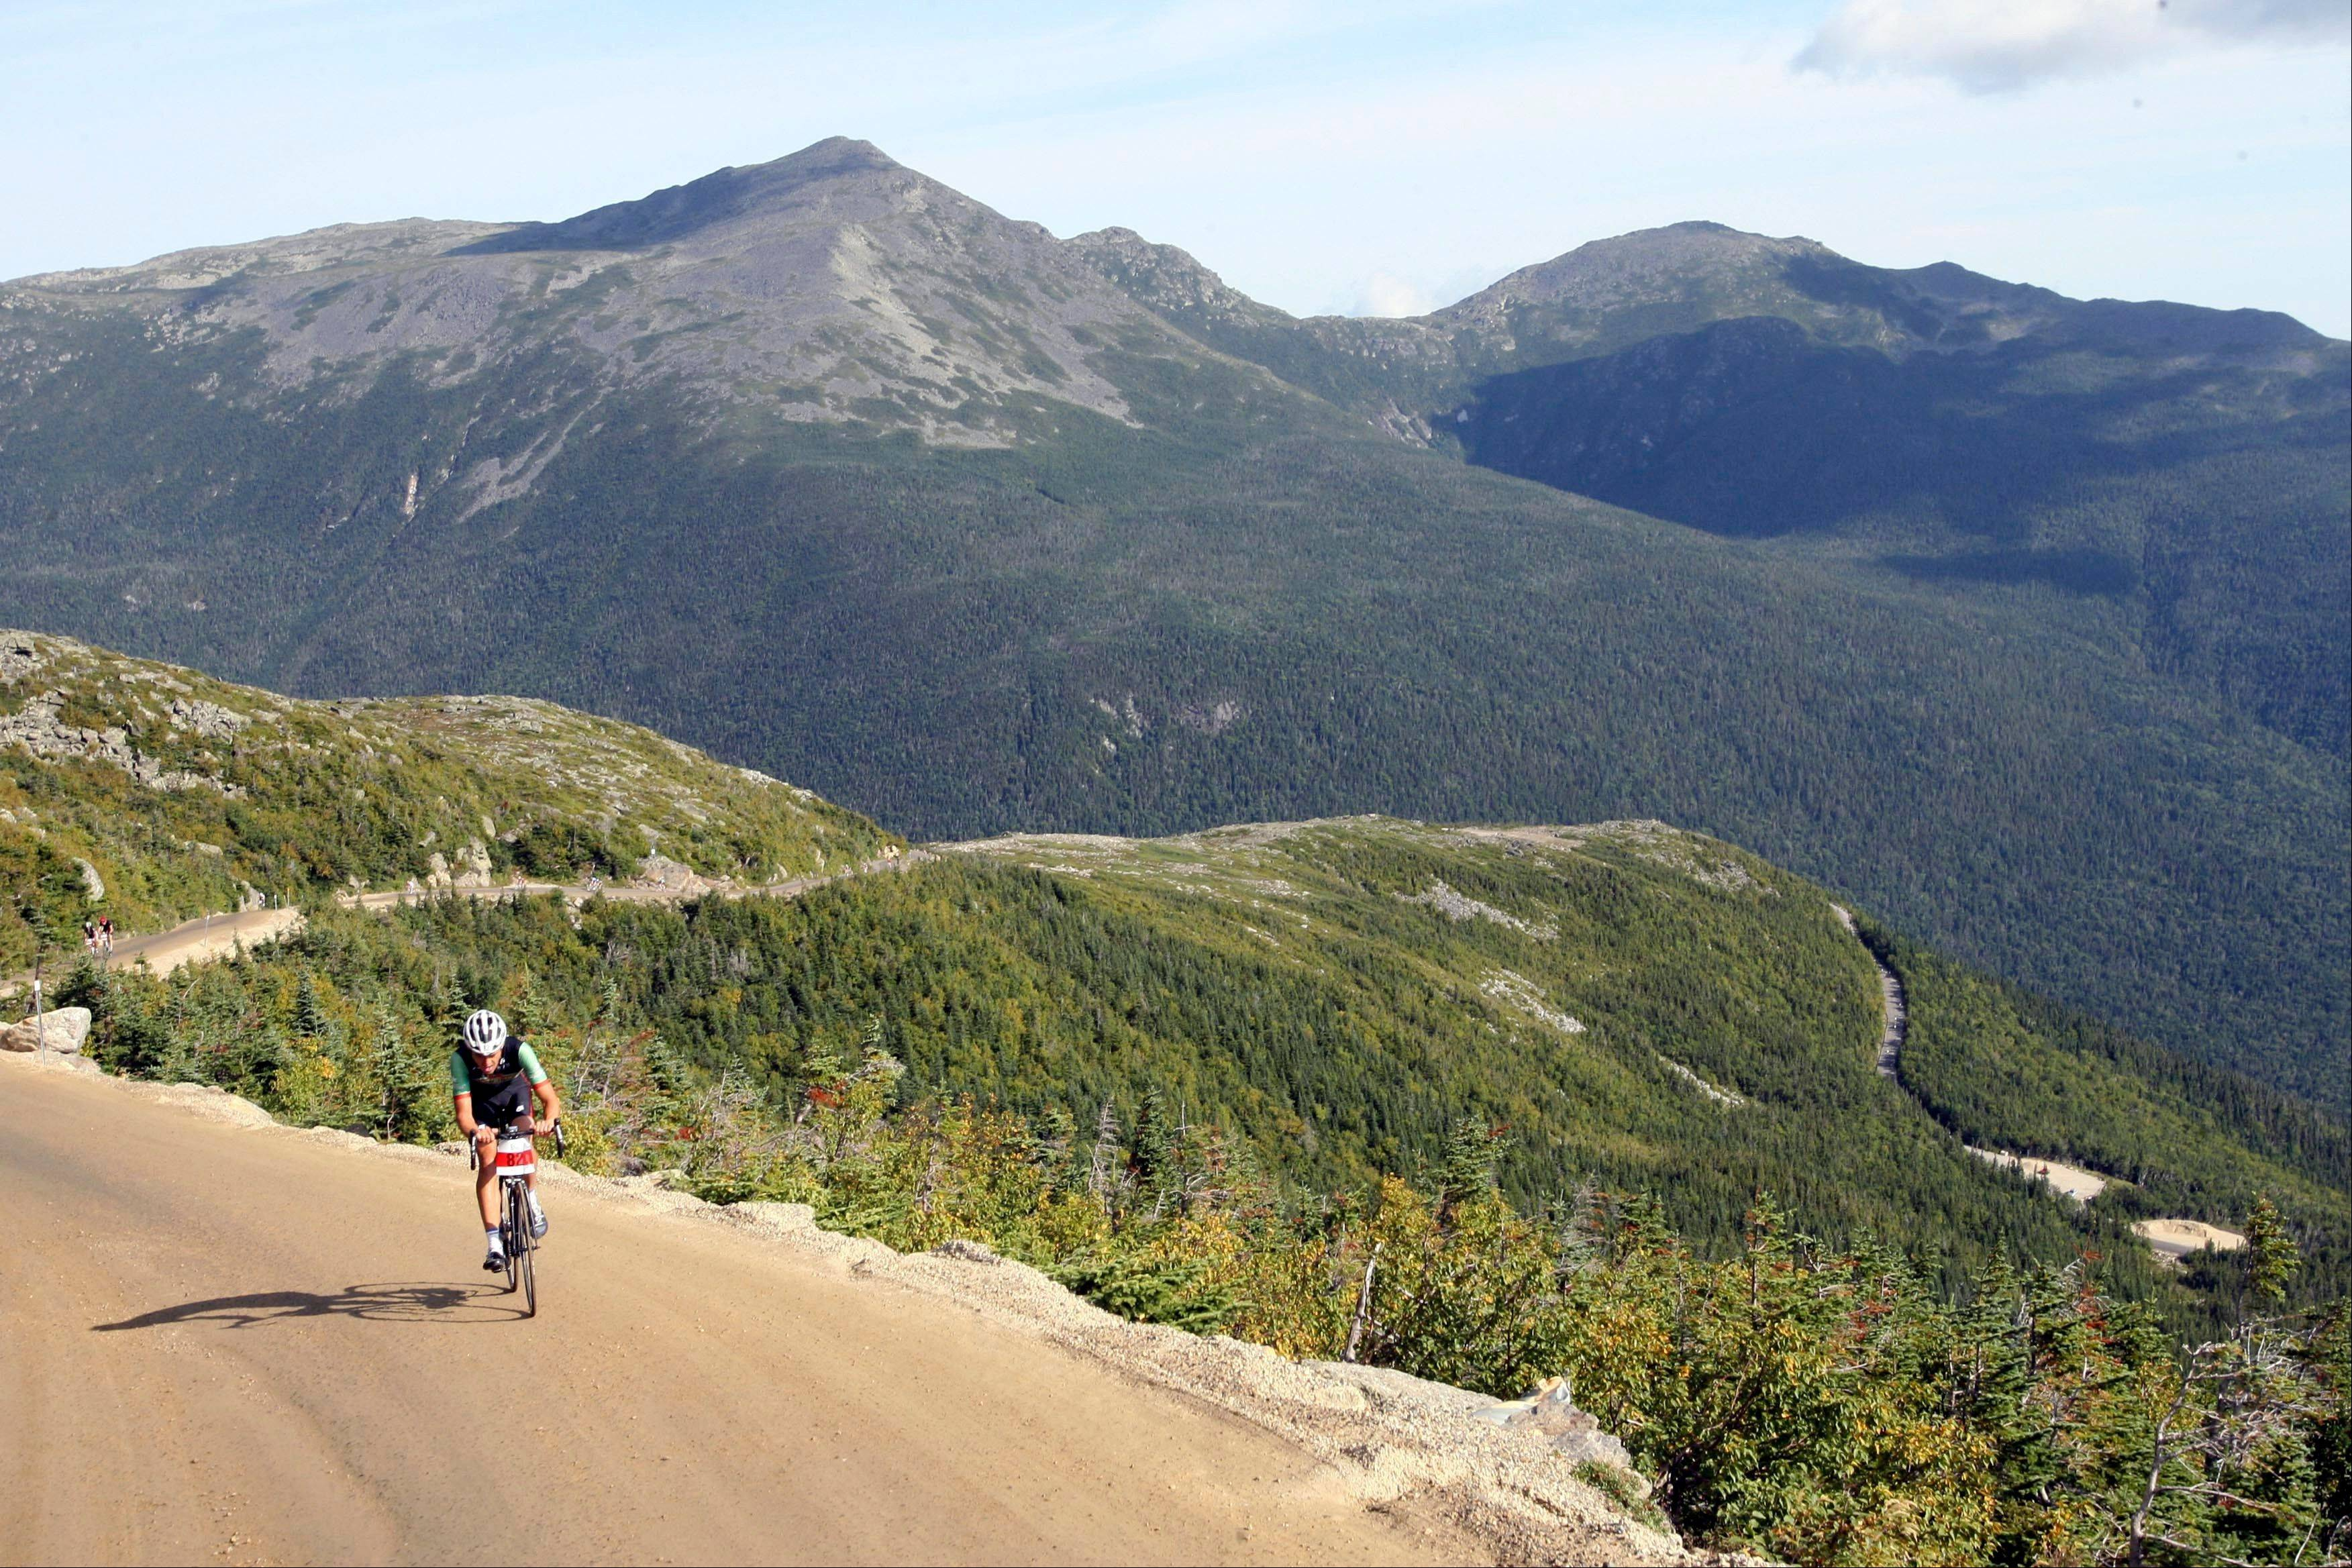 Nico Toutenhoofd peddles up the Mount Washington. The Auto Road is celebrating its 150 anniversary this summer.